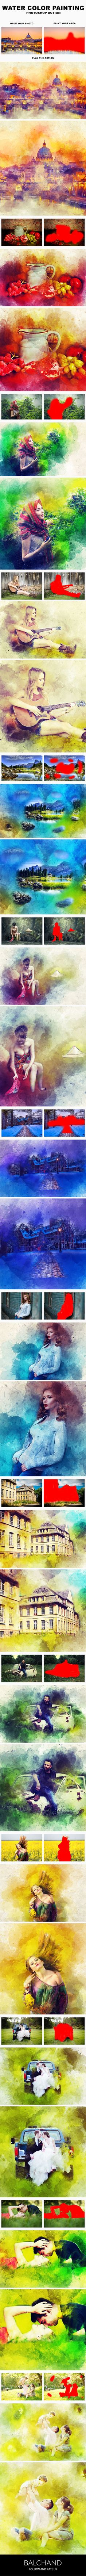 Water Color Painting Photoshop Action - Photo Effects Actions